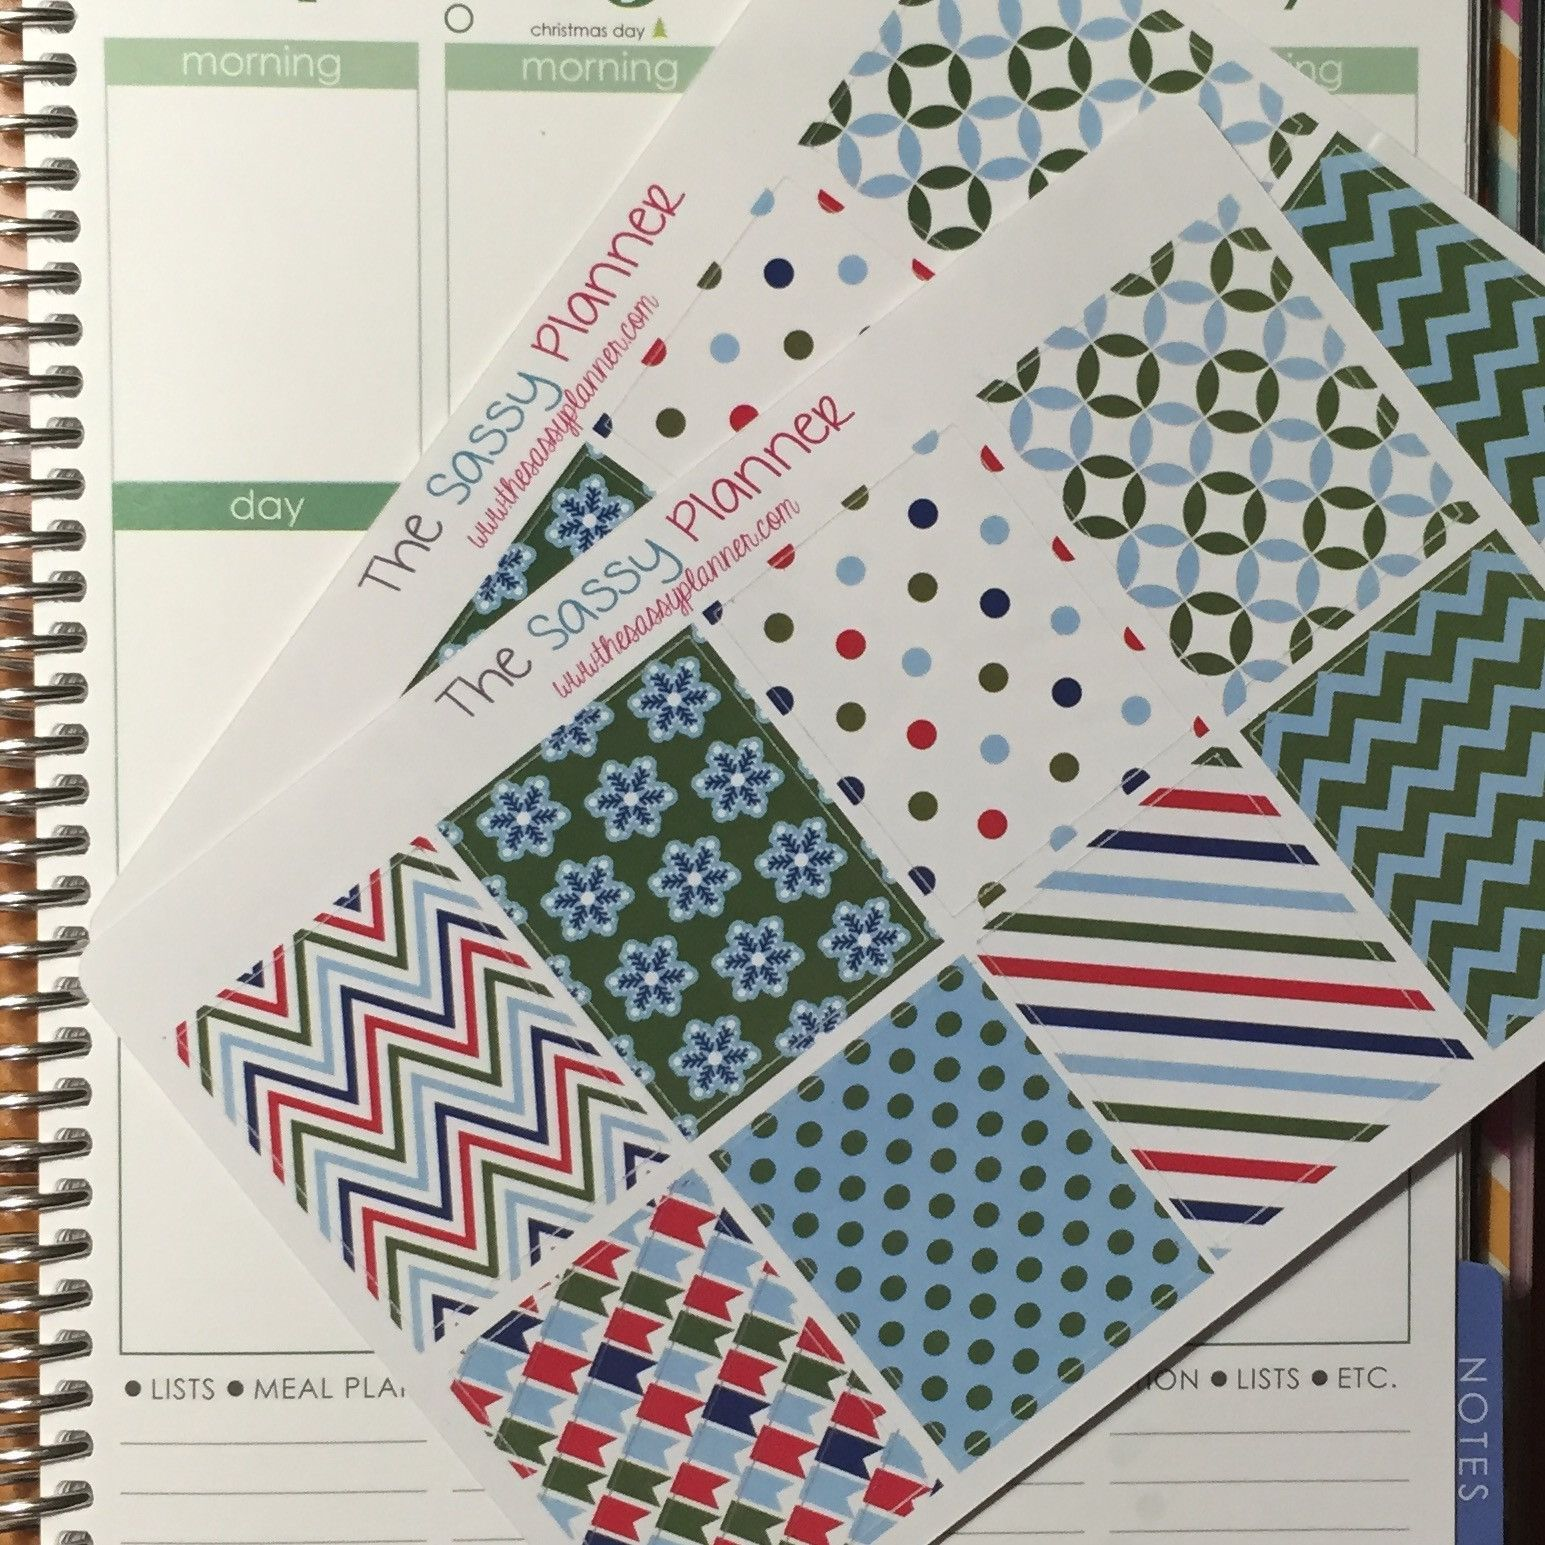 NEW! December Monthly Full Box Stickers for Erin Condren Life Planner/Plum Paper Planner - Set of 16